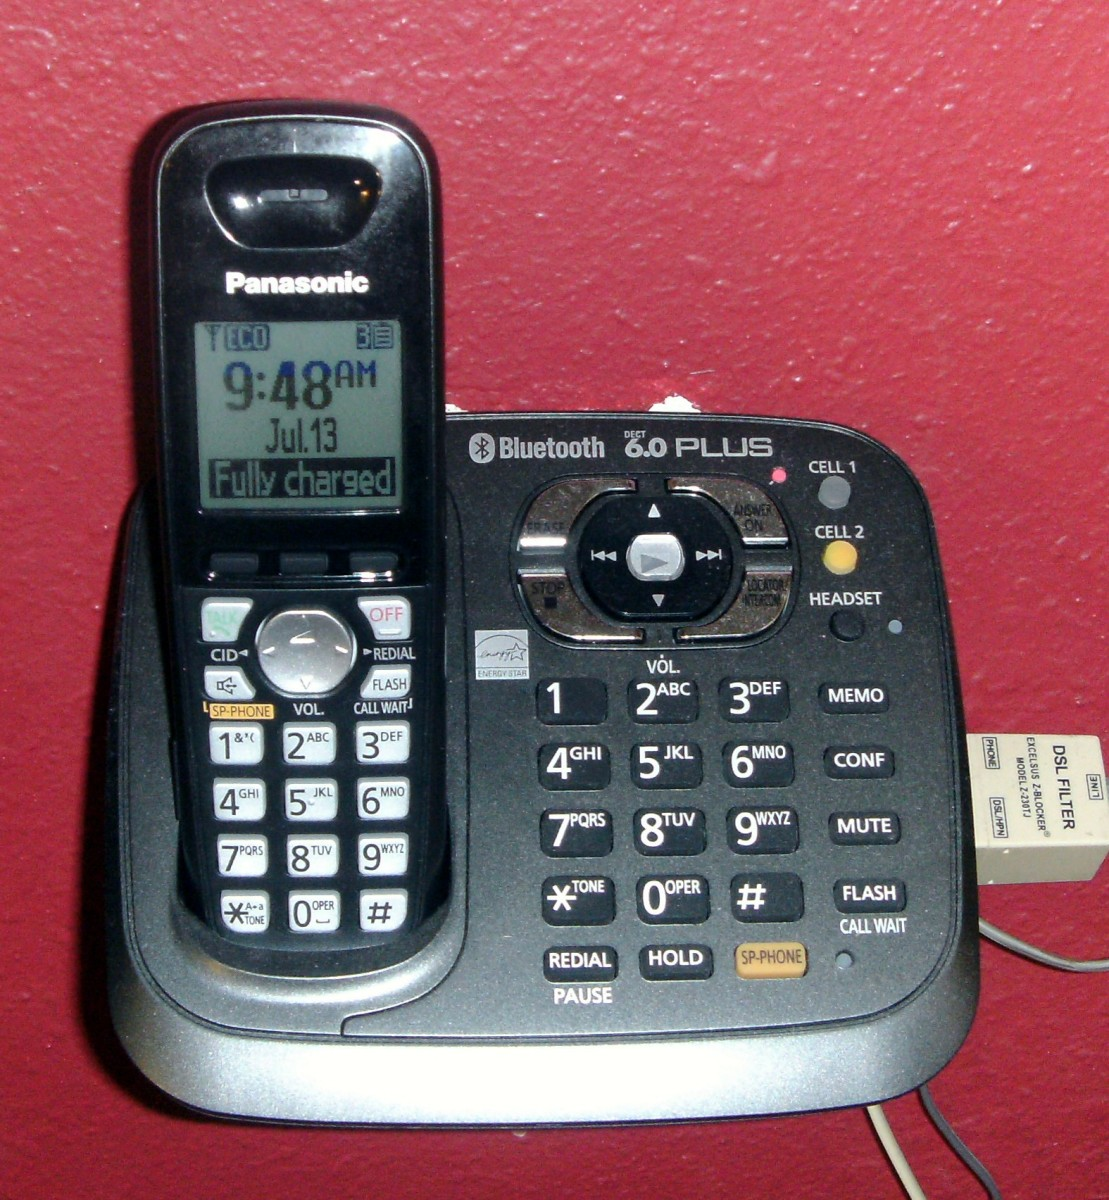 A Cordless Bluetooth Home Phone Review-Panasonic KX-TG